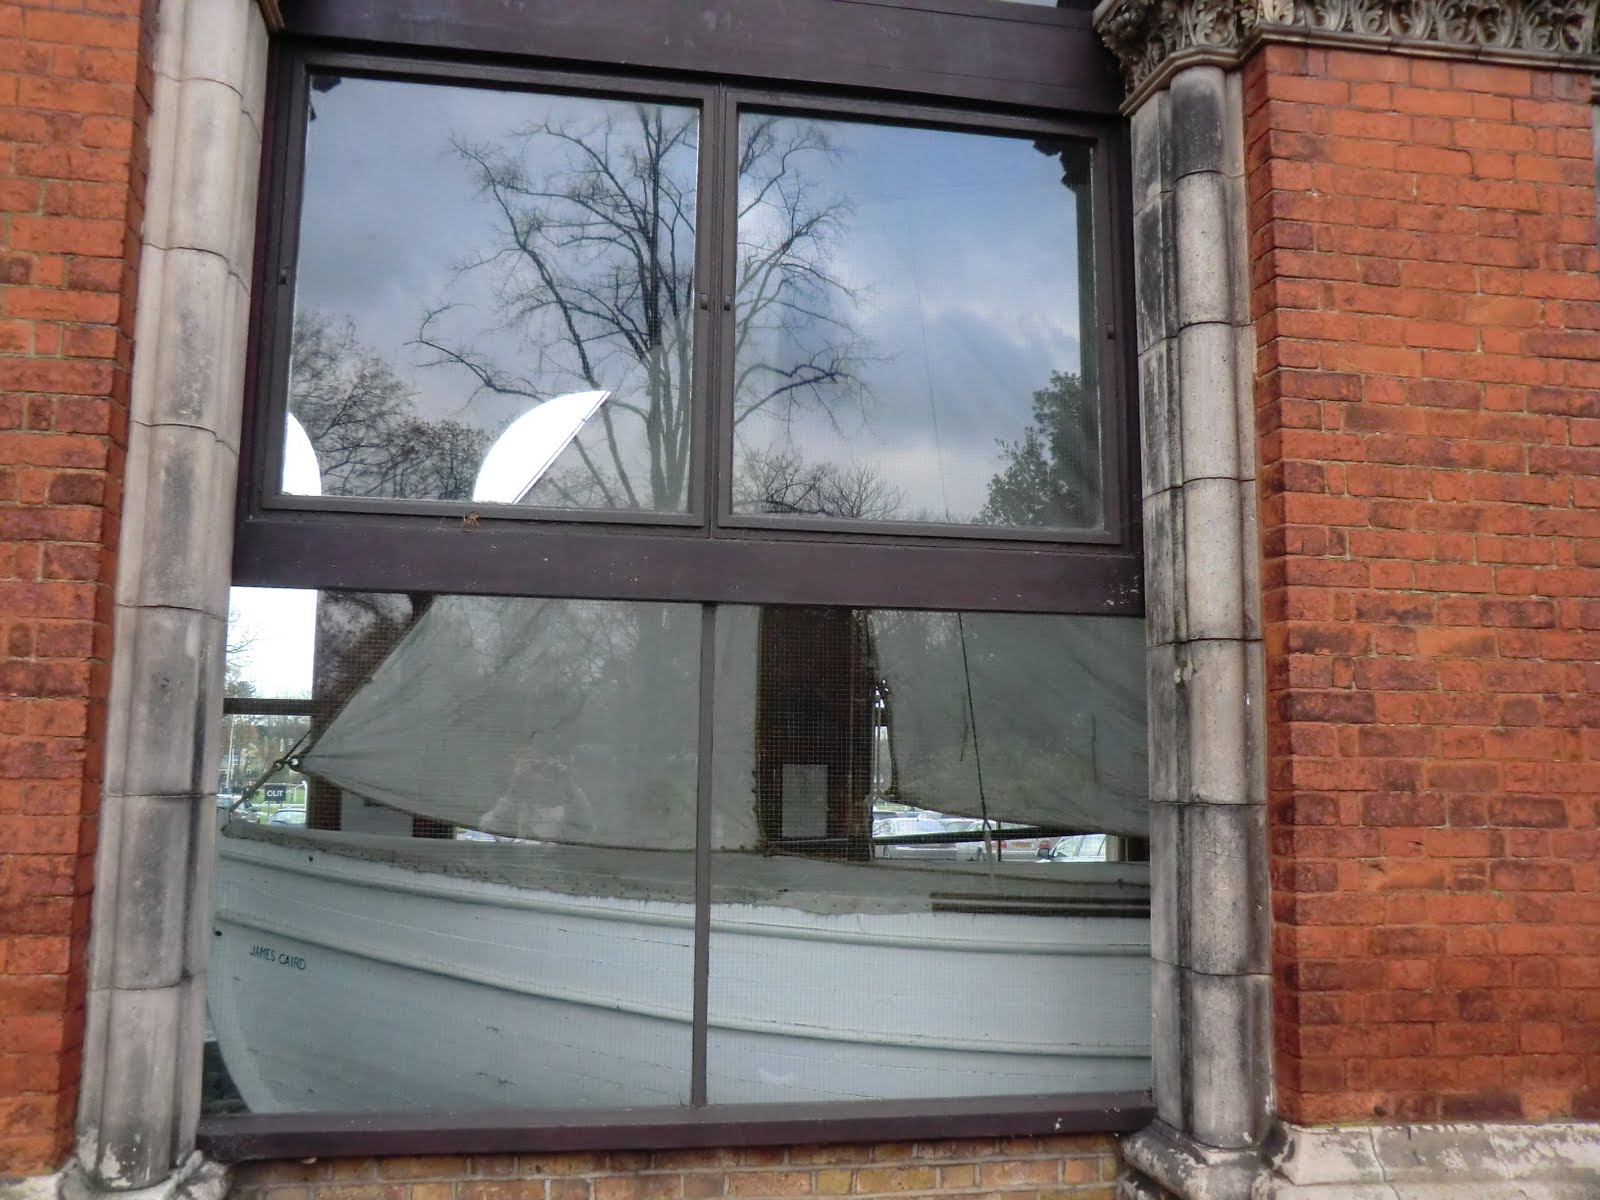 CIMG4975 The James Caird (Shackleton's lifeboat) in Dulwich College